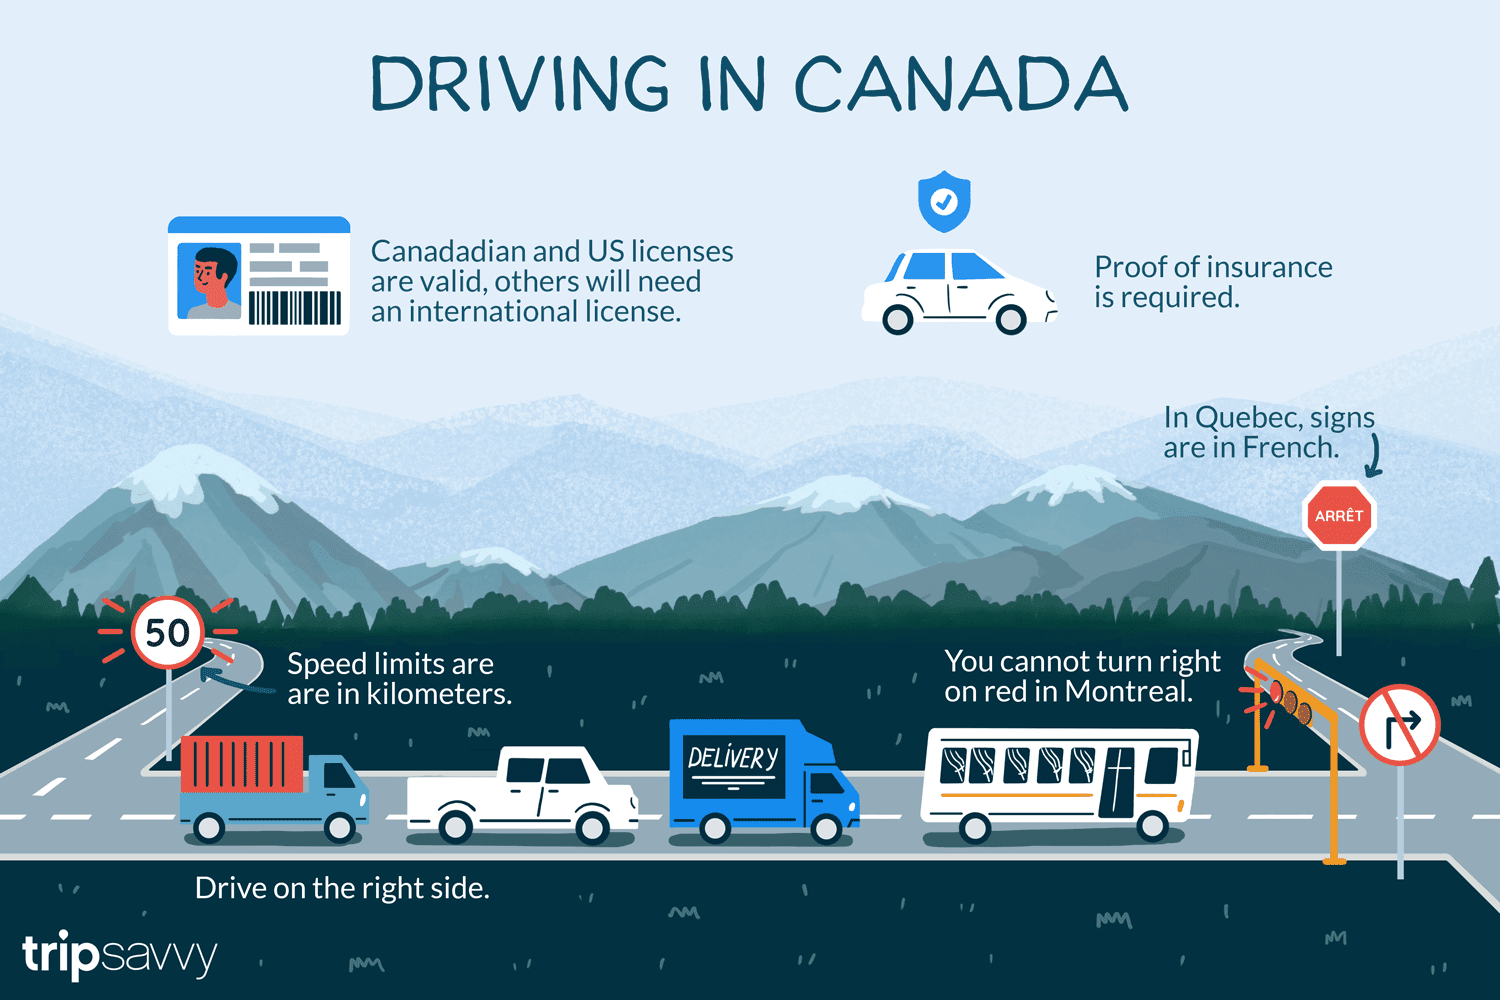 Driving in Canada: What You Need to Know